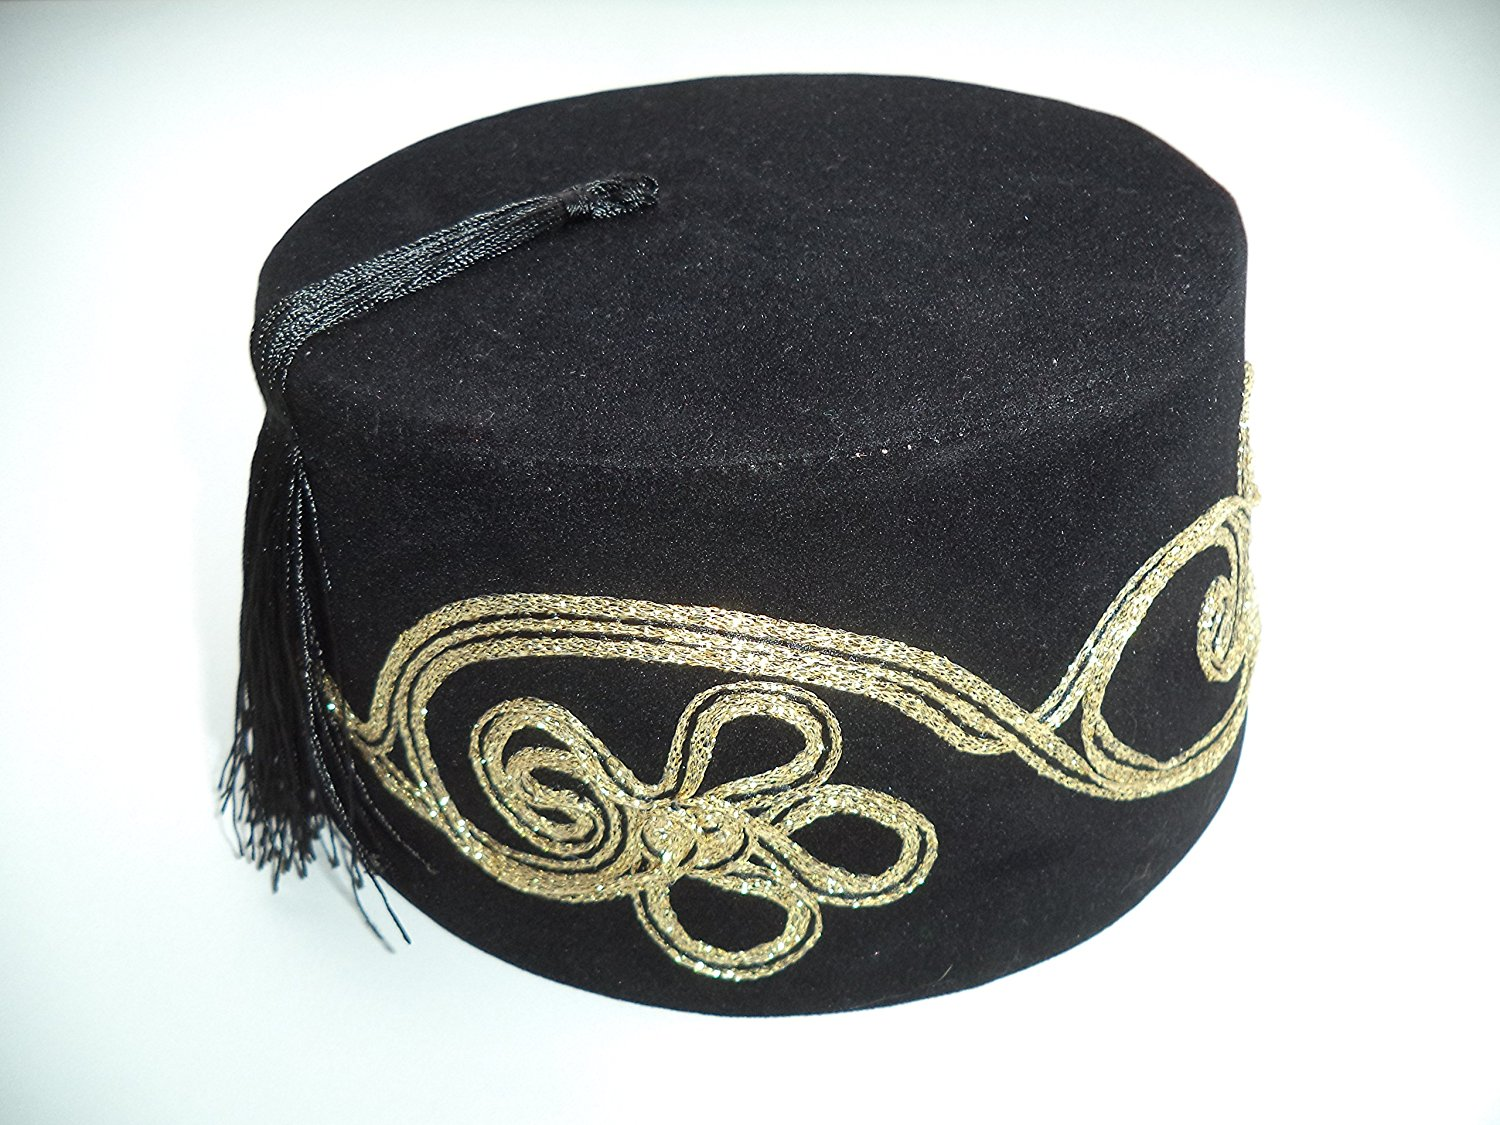 b3a8823c167 Get Quotations · Embroidered Fez Fes Authentic Turkish Ottoman Hat Tarboosh  Exotic Ottoman Wear (Black)